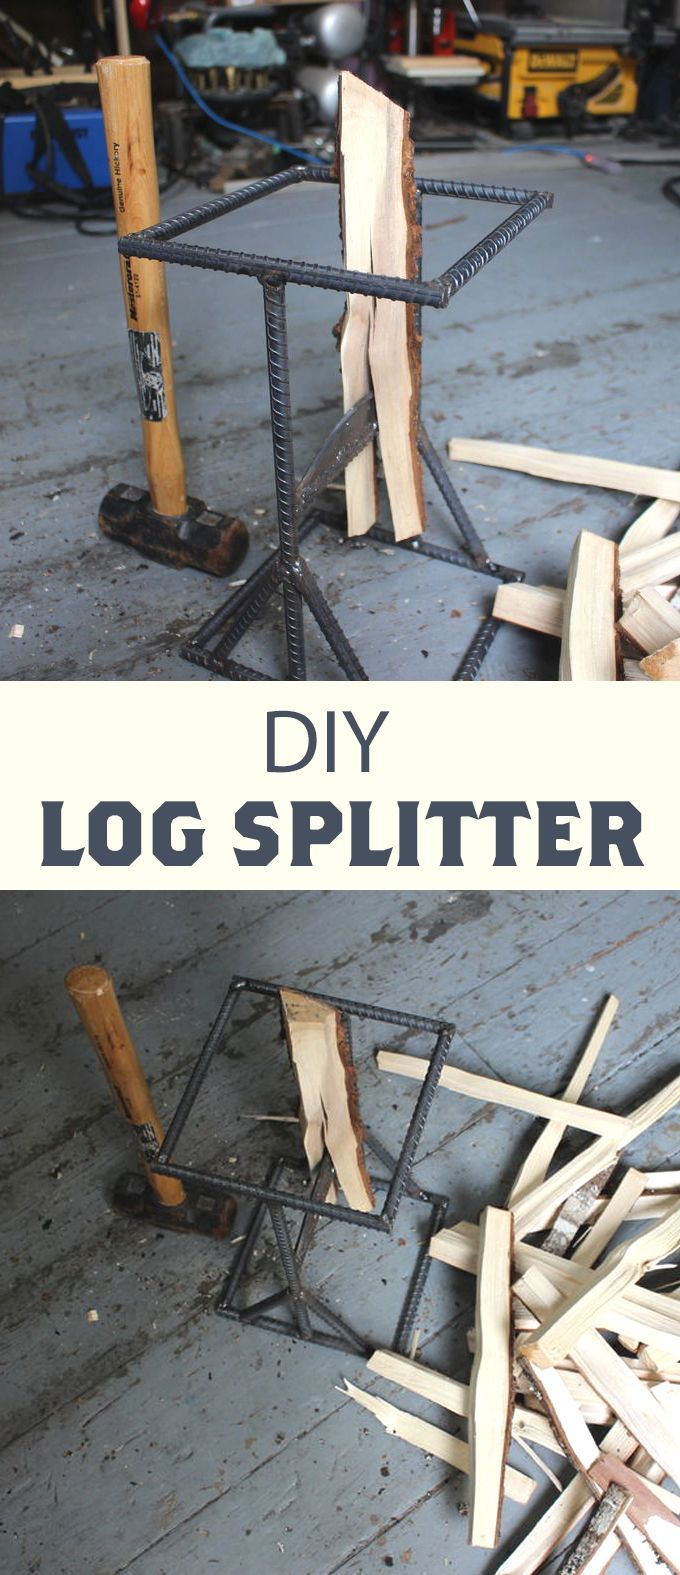 How to Make a Kindling Splitter | Pinterest | Stationary, Logs and Woods